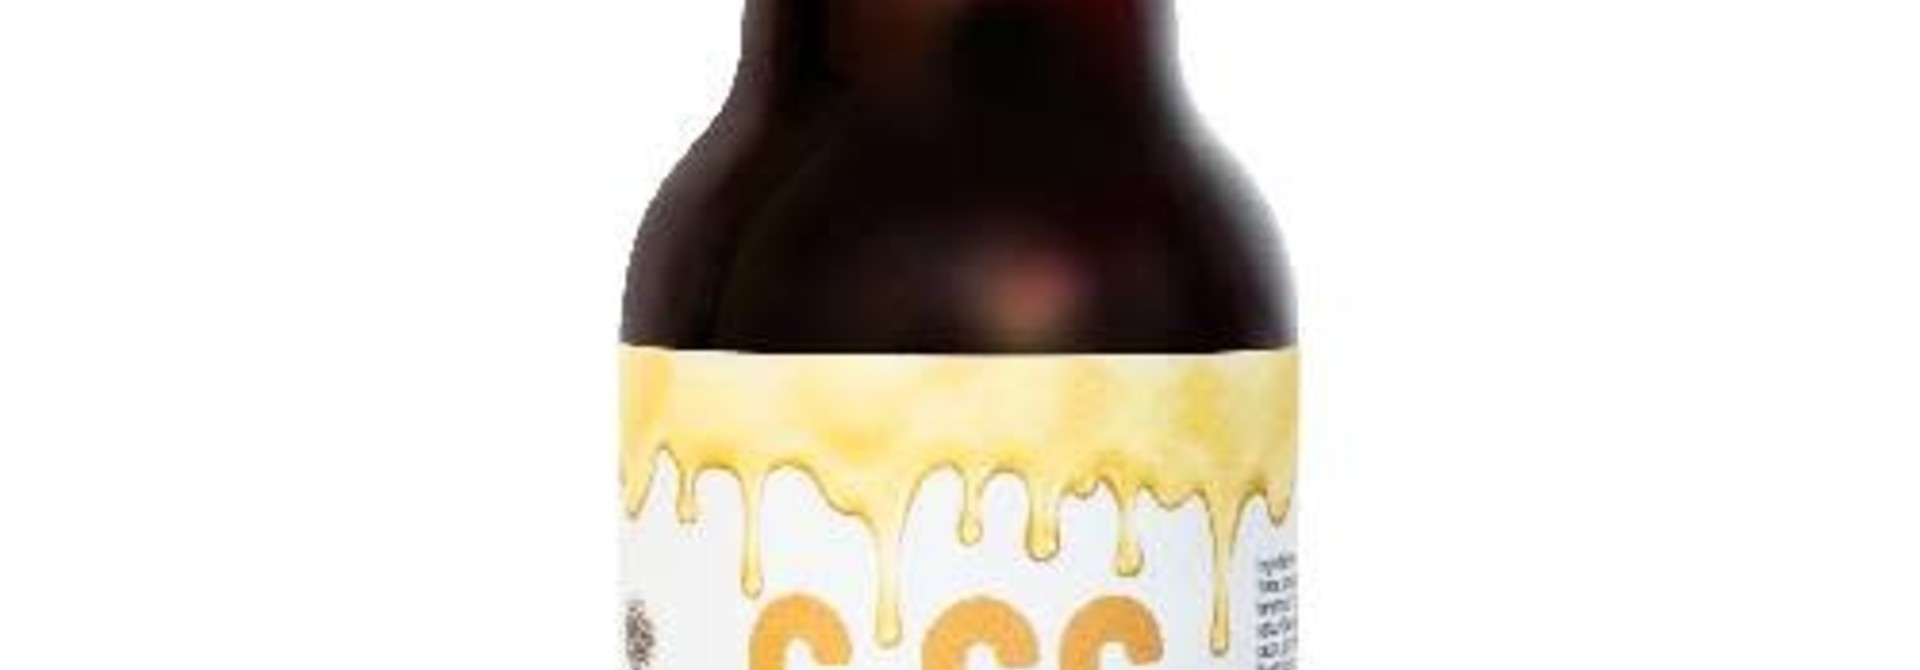 NAASTBOS WHITE CHOCOLATE STOUT 33CL